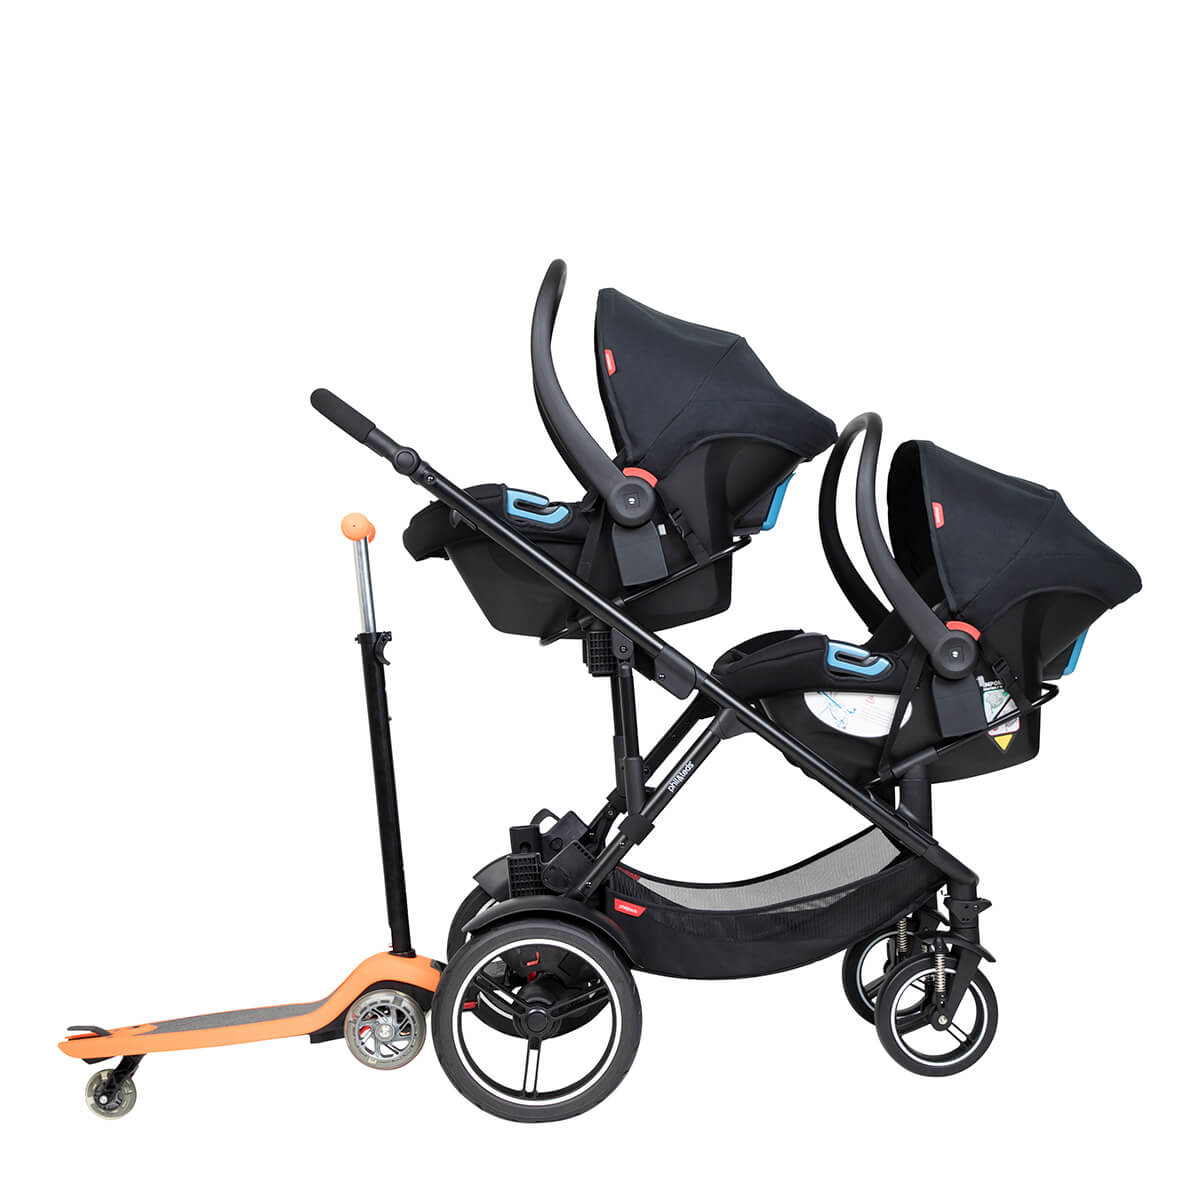 https://cdn.accentuate.io/4509867409505/19794908643498/philteds-voyager-buggy-with-double-travel-systems-and-freerider-stroller-board-in-the-rear-v1626485365592.jpg?1200x1200